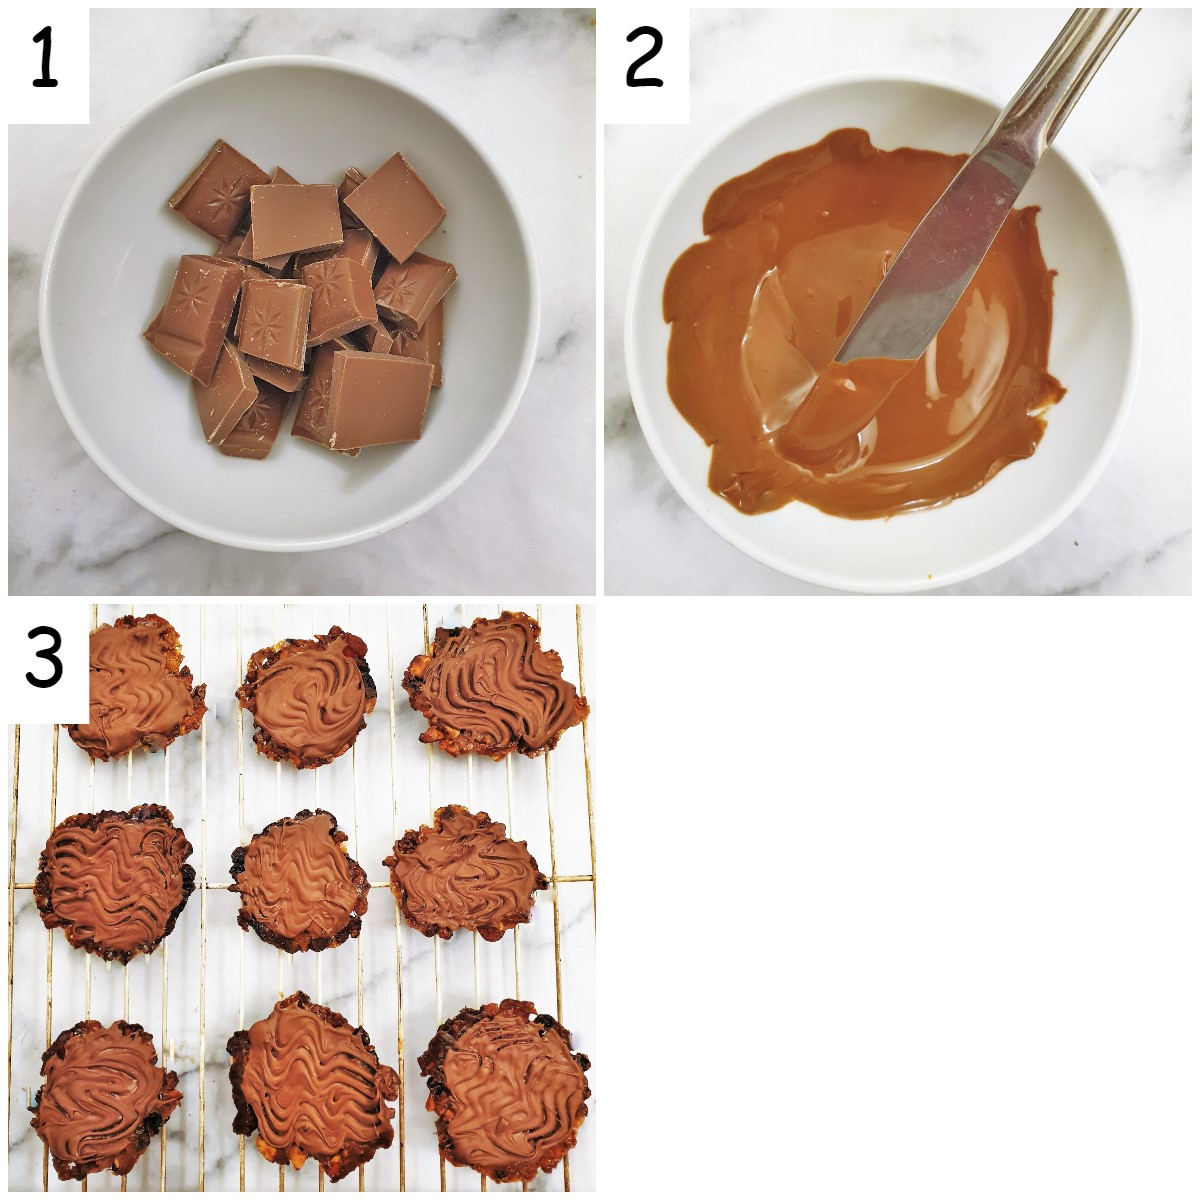 Steps for coating the florentines with chocolate.